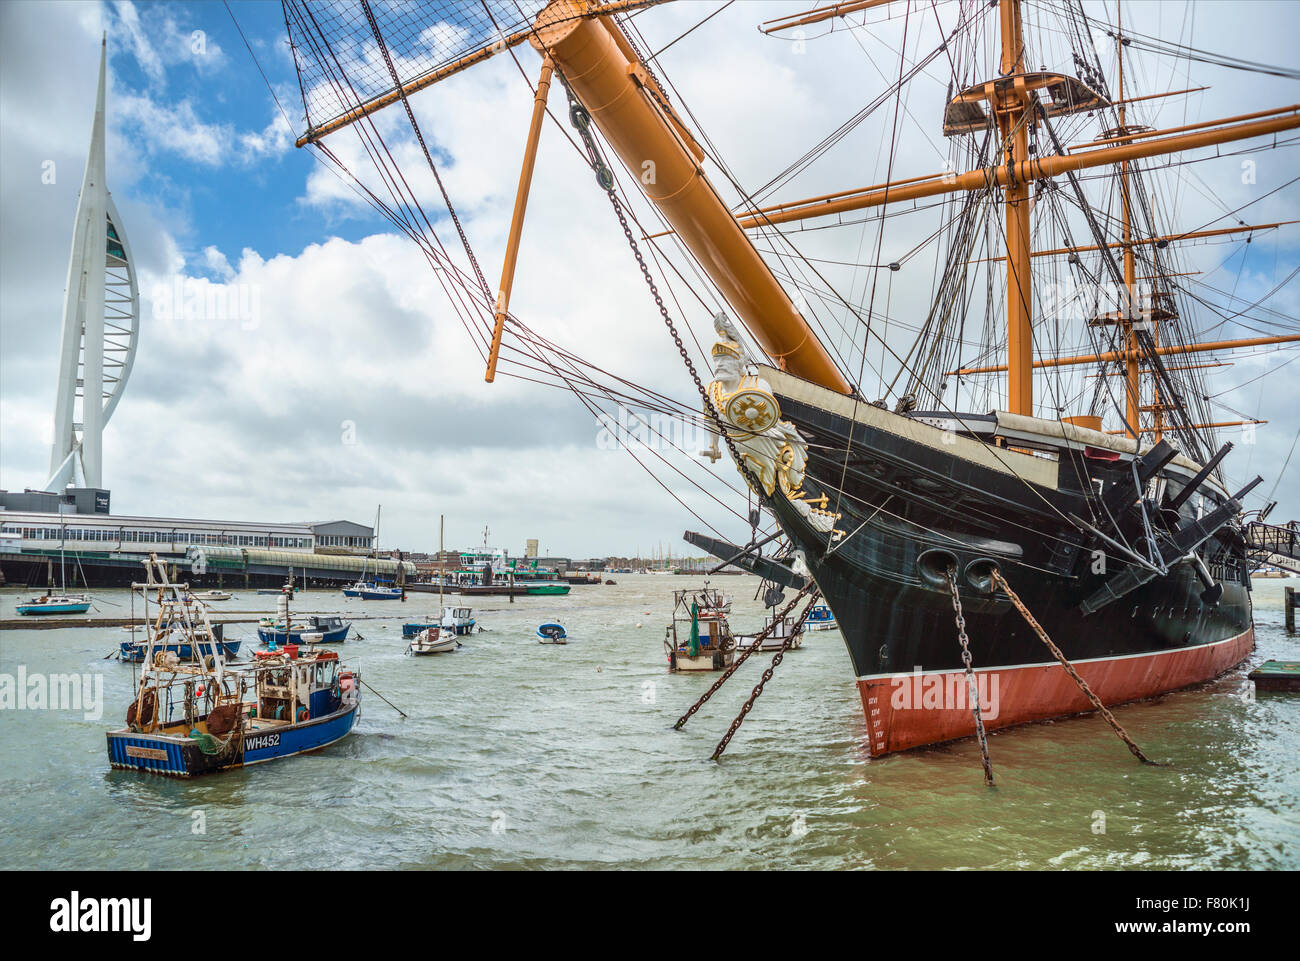 HMS Warrior at Portsmouth Historic Dockyard, England, UK. It was the Royal Navy's first ironclad ocean-going - Stock Image